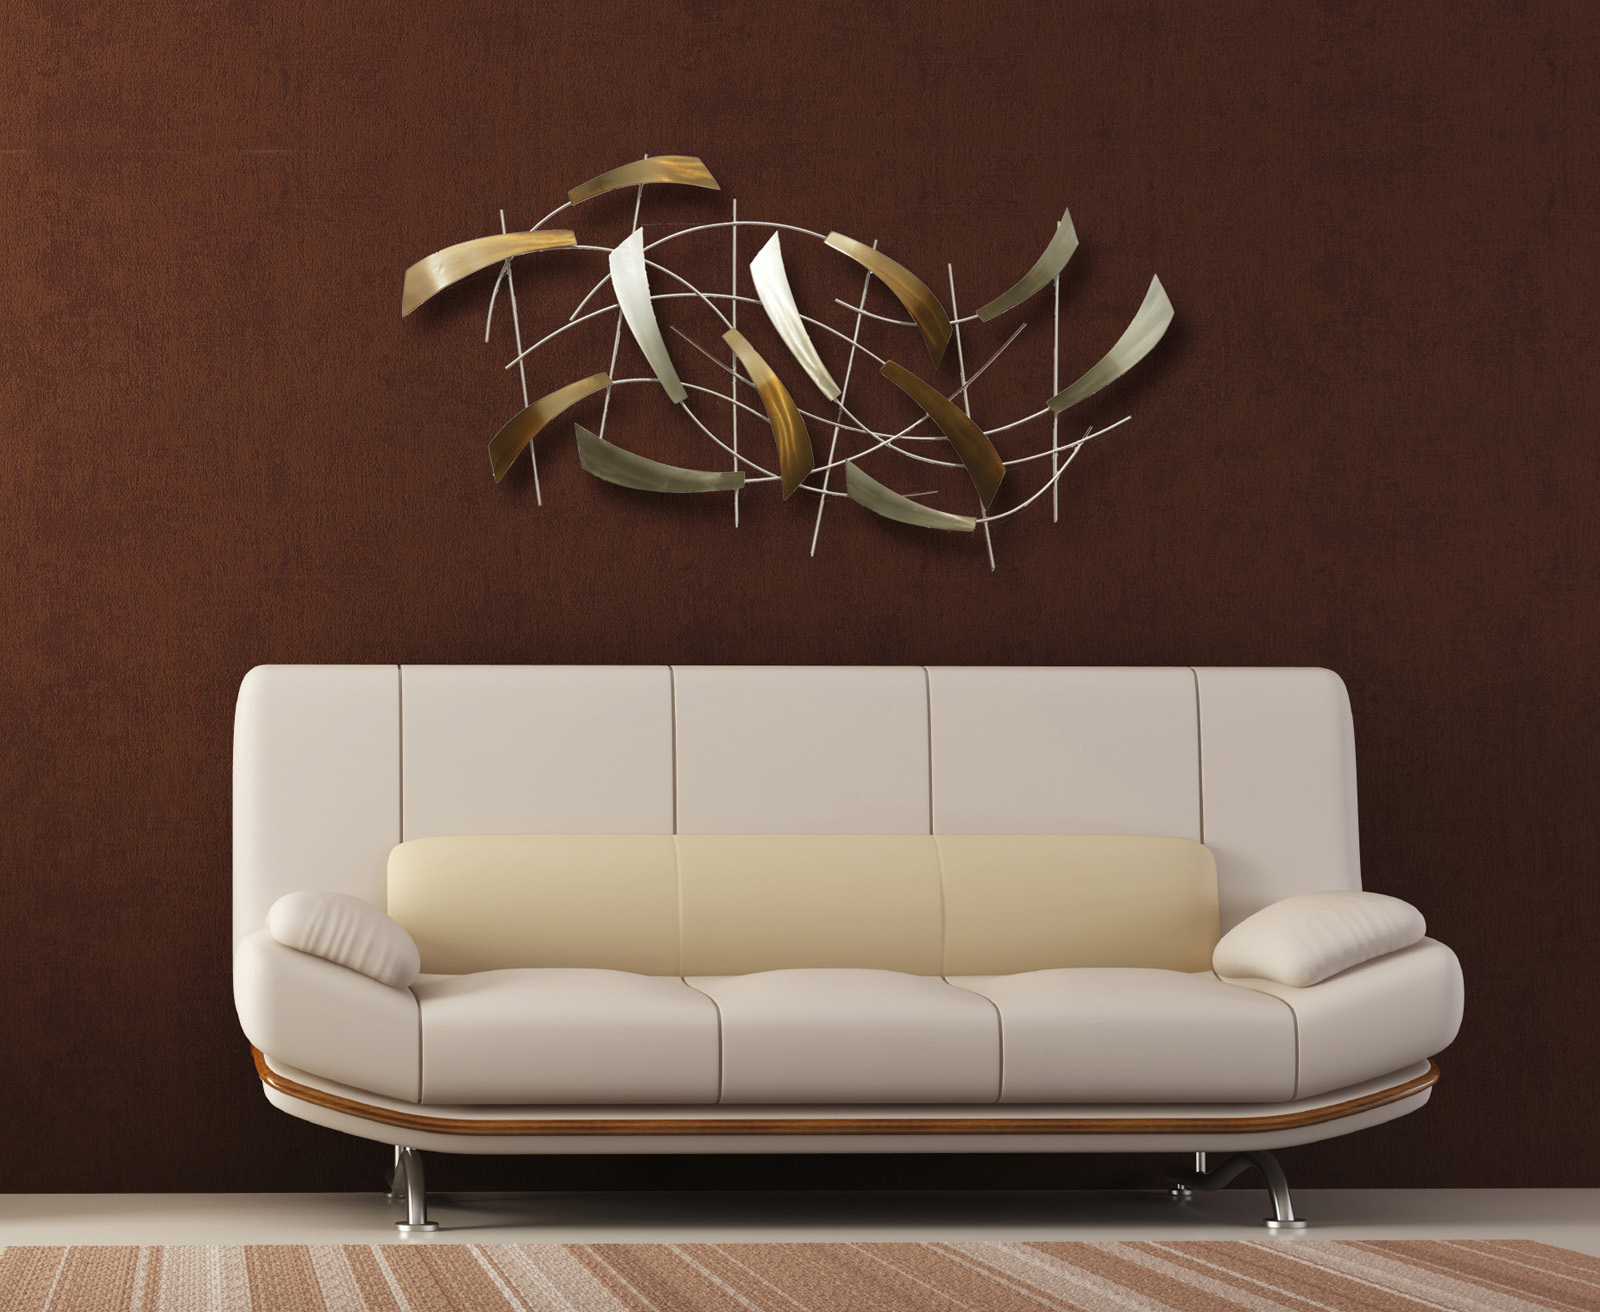 Gift & Home Today: New Contemporary Wall Designs Are